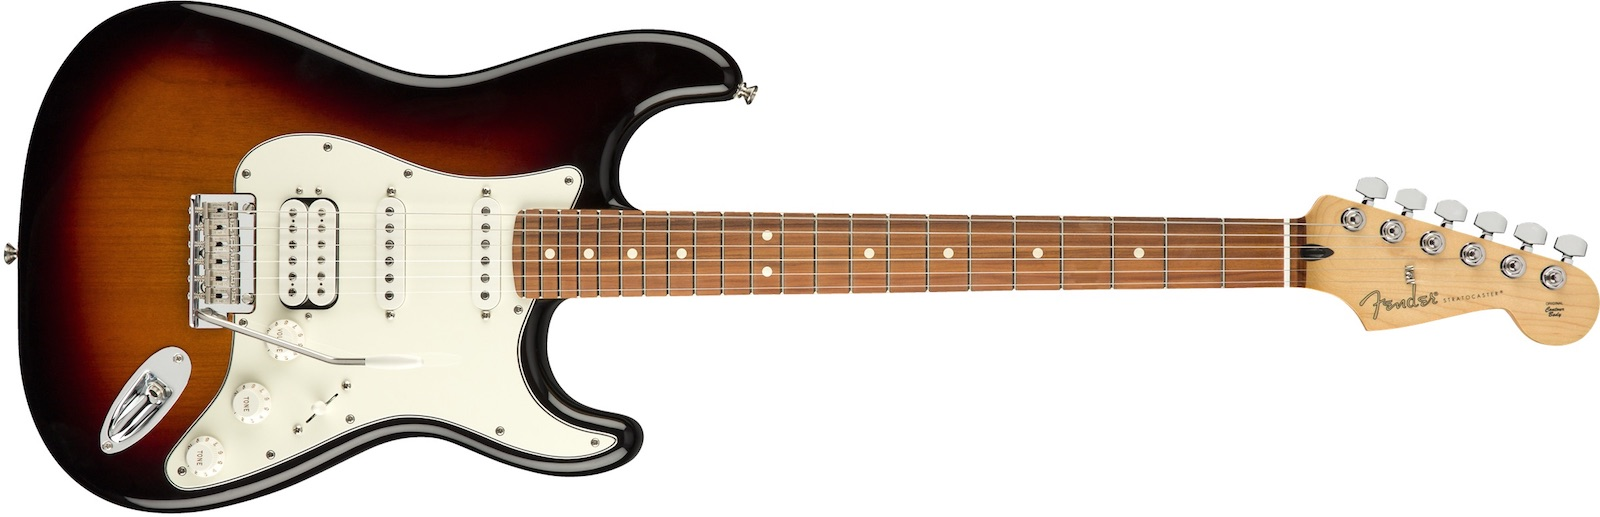 【新品】Fender Player Stratocaster HSS Pau Ferro Fingerboard ~3-Color Sunburst~【お取り寄せ】【送料無料】【池袋店】